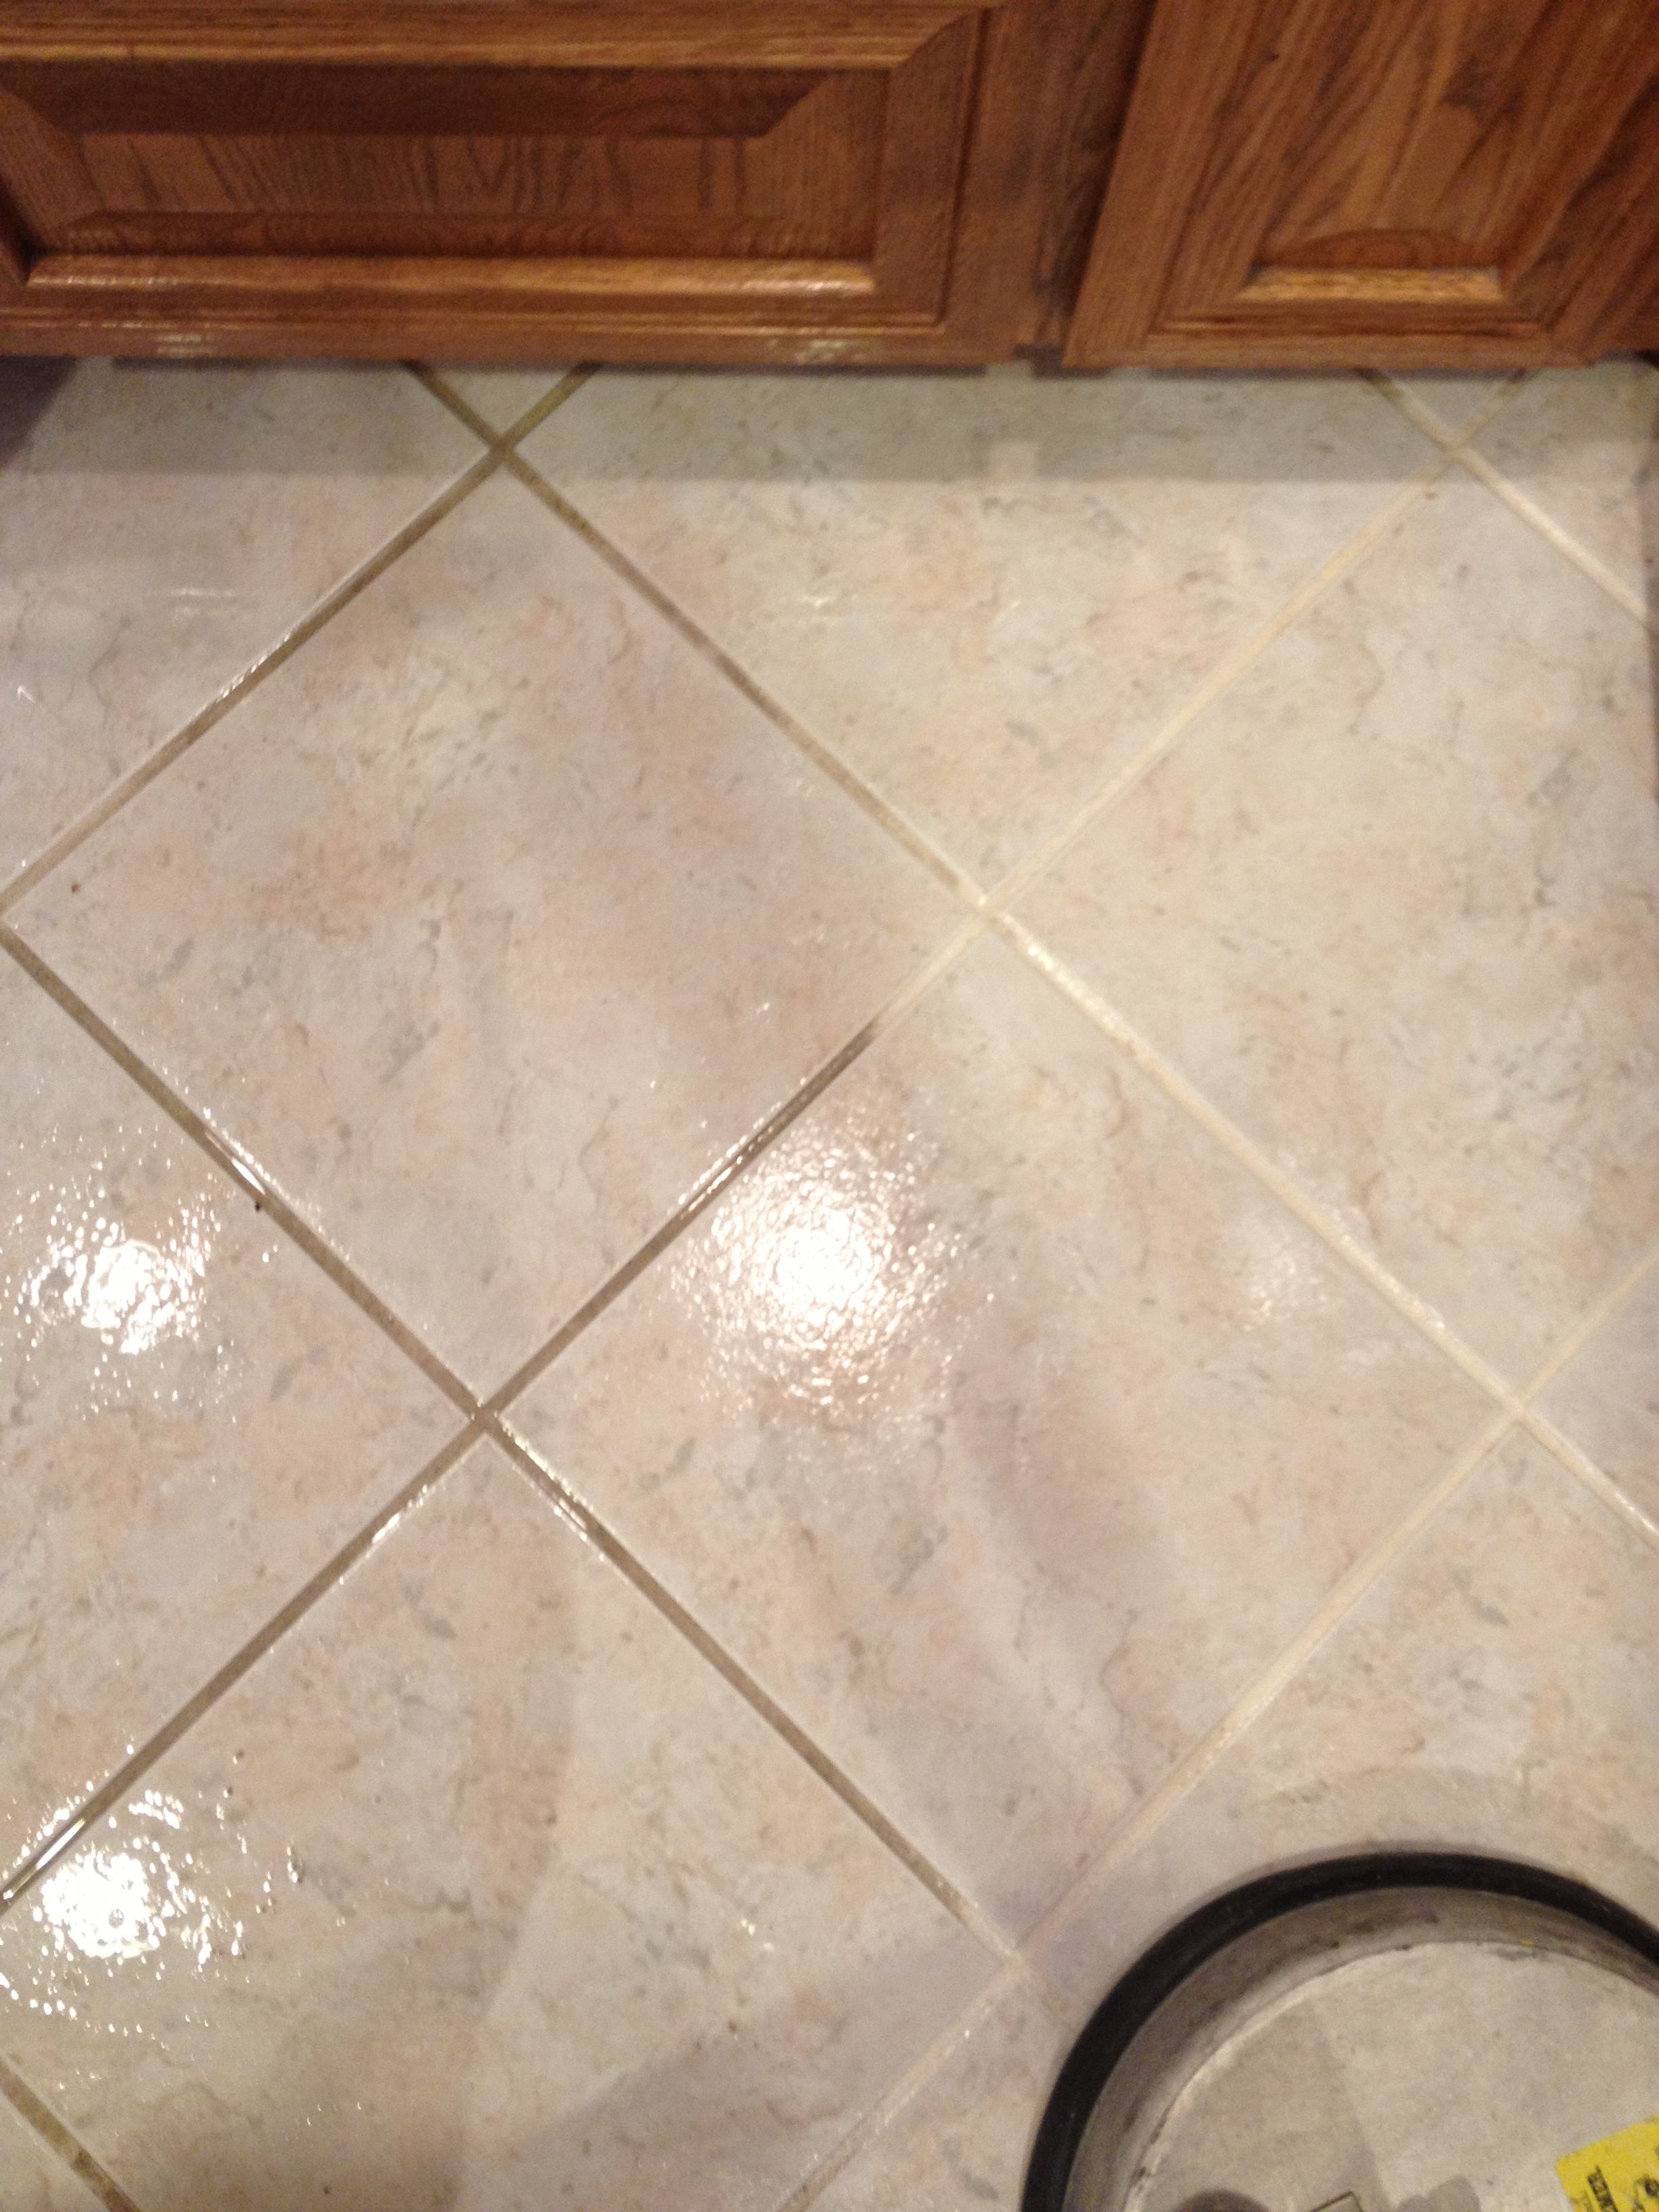 Tile And Grout Cleaning In San Diego Stanley Steemer Stanley